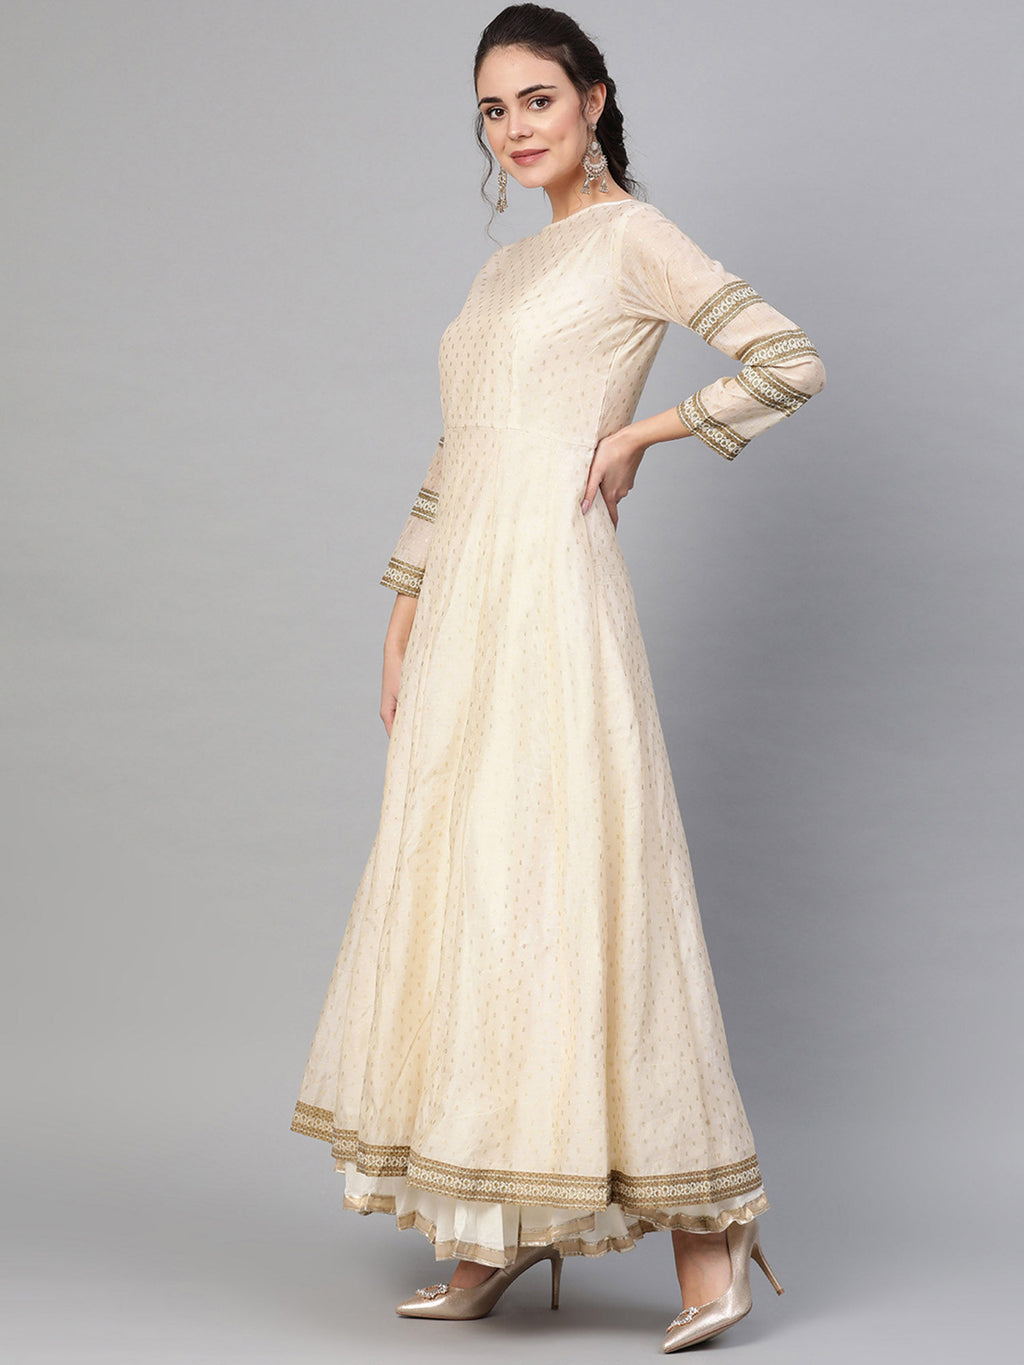 Beige Anarkali Maxi Dress With Dupatta -Set of 2 - Riviera Closet